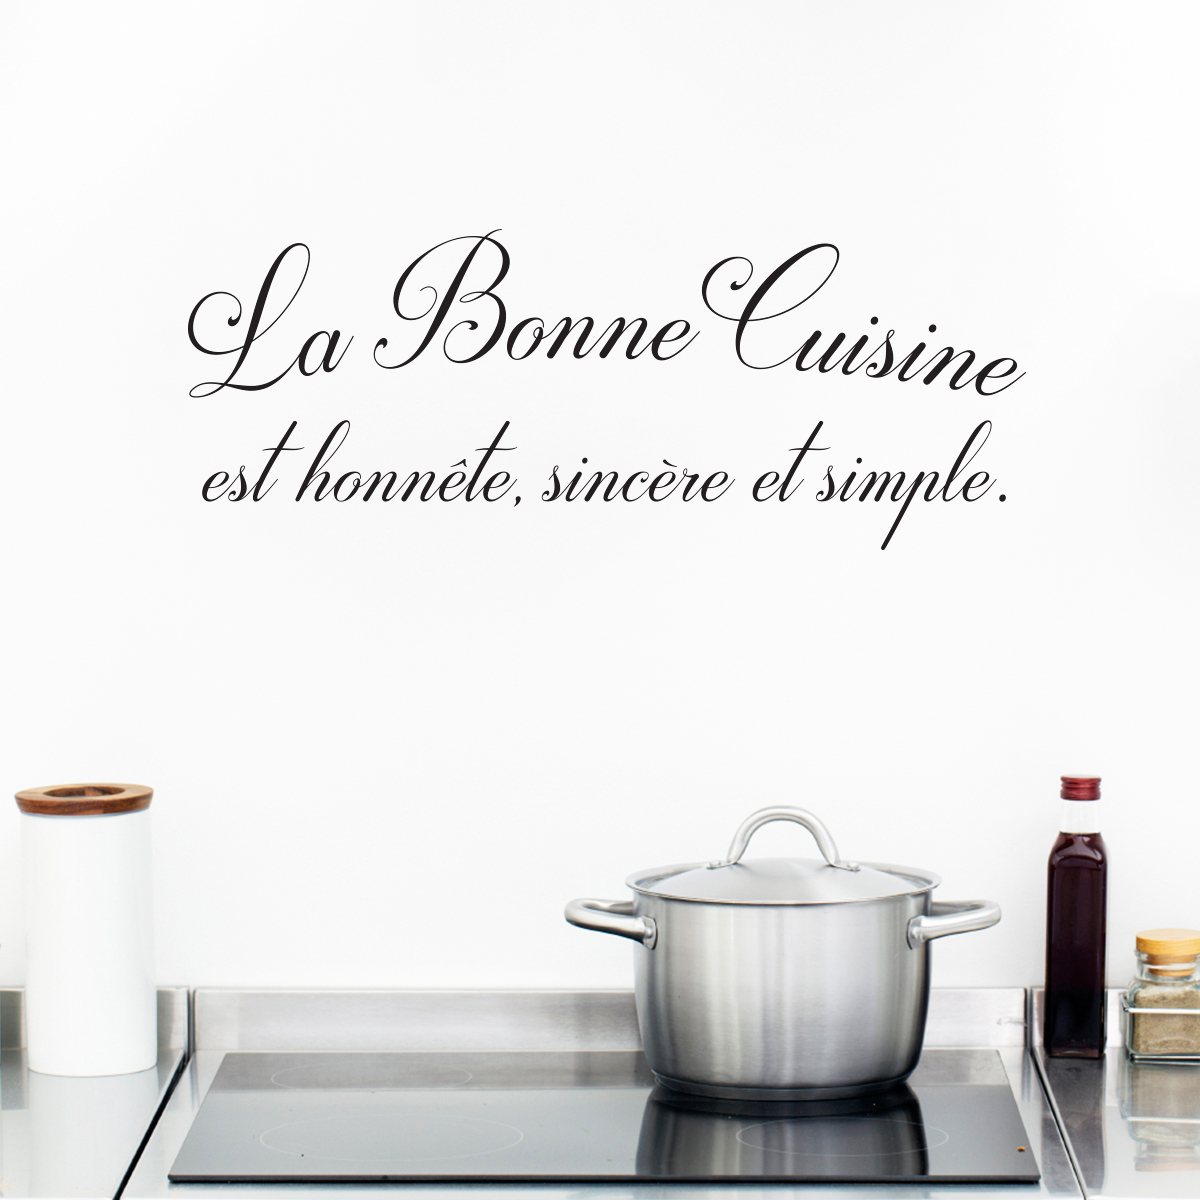 Sticker Citation Cuisine La Bonne Cuisine Stickers Stickers